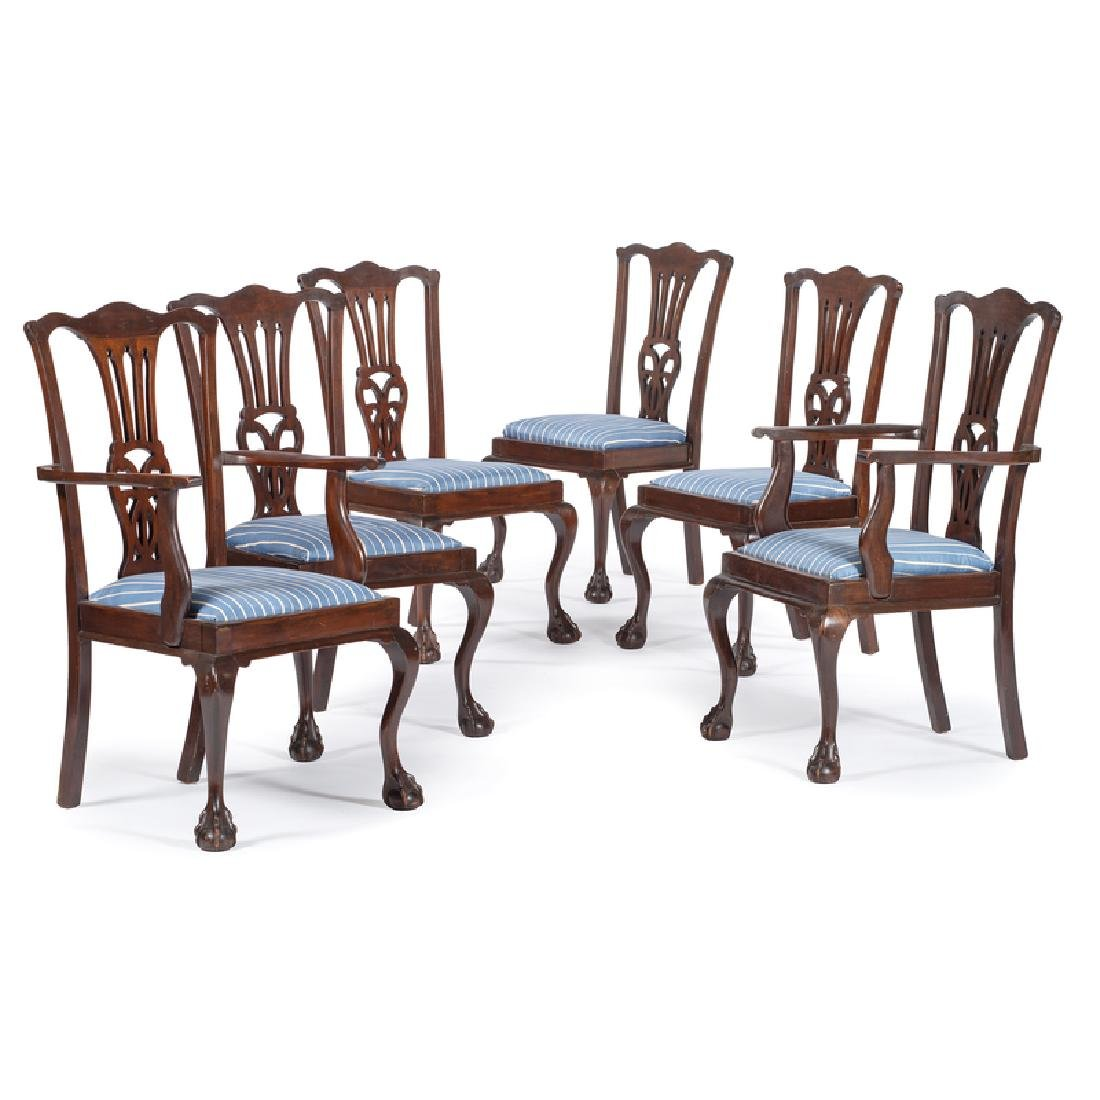 Chippendale-style Dining Chairs